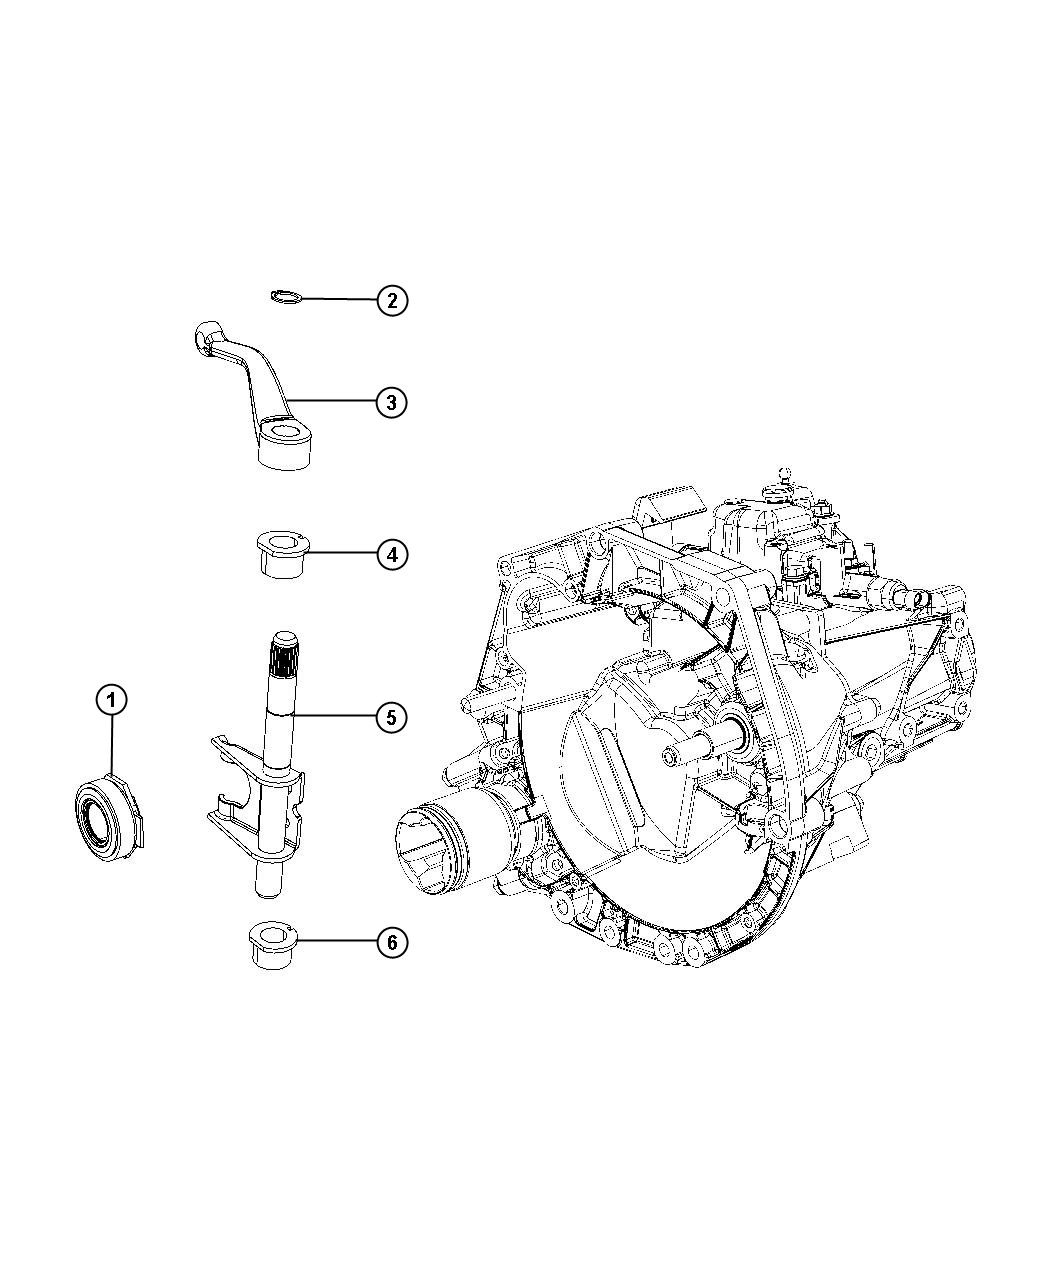 2012 Fiat 500 Bearing  Clutch Release  Mexico  Ratio  Rear